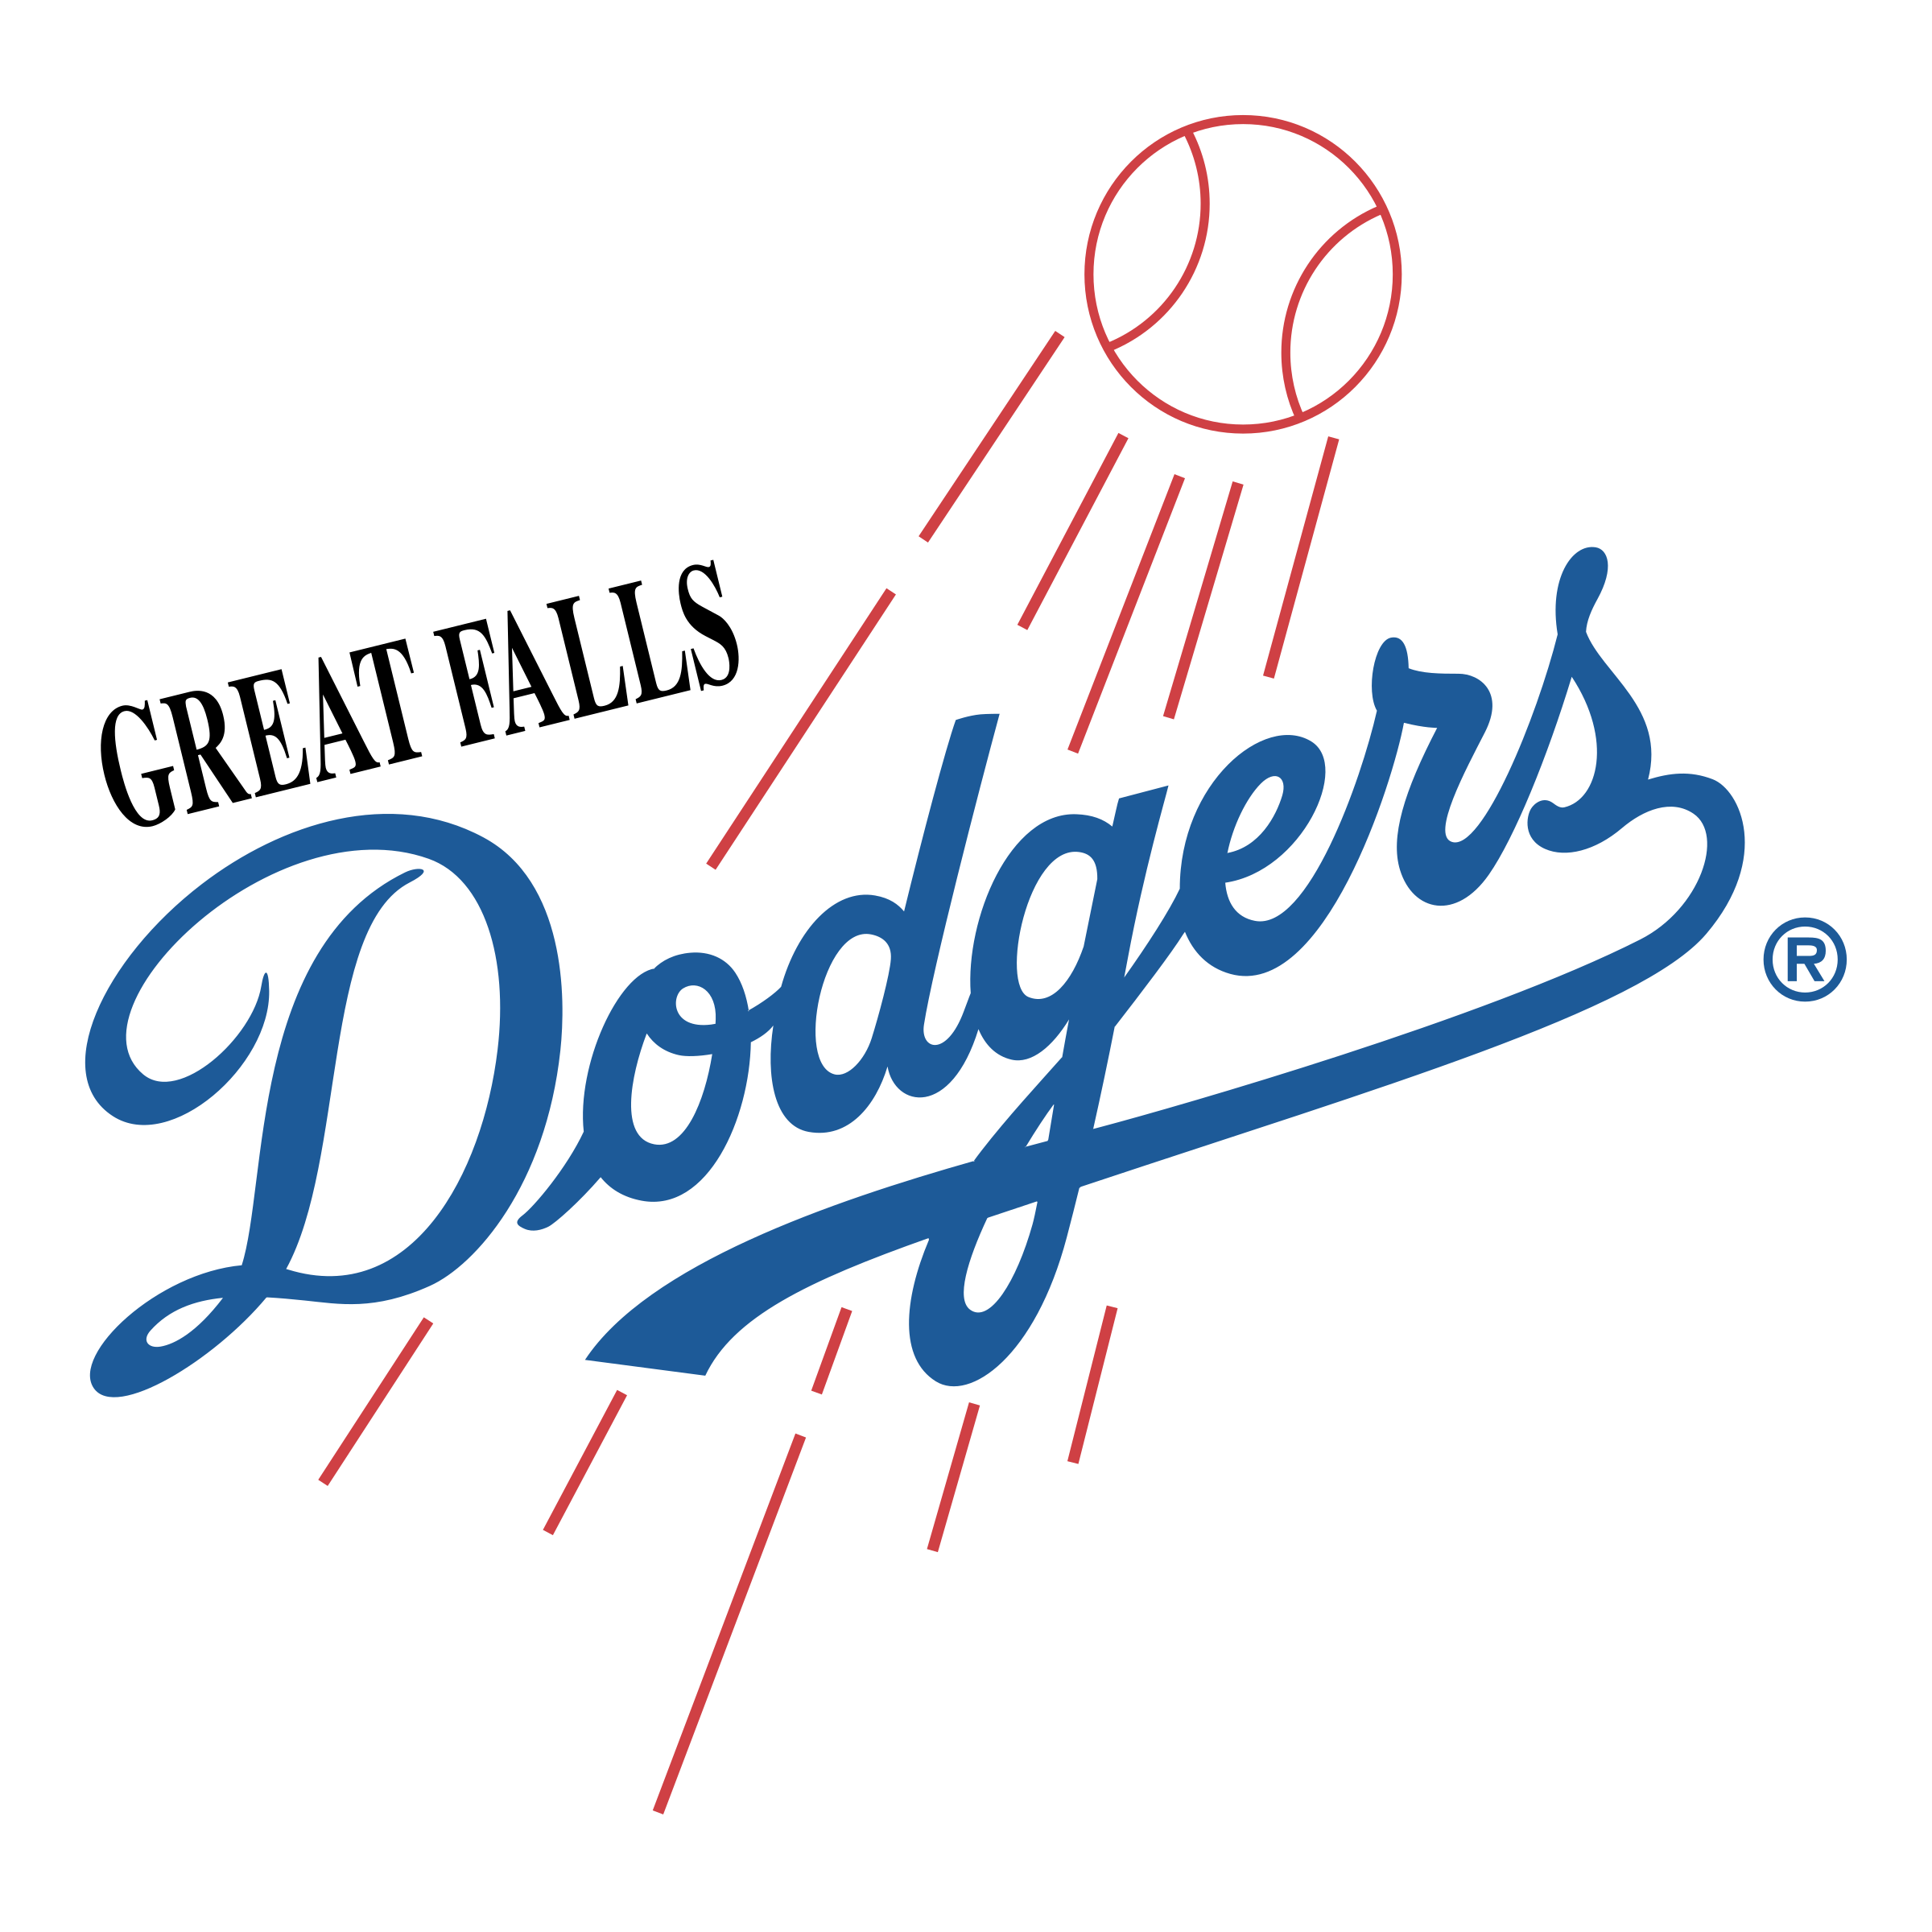 dodgers svg thank you